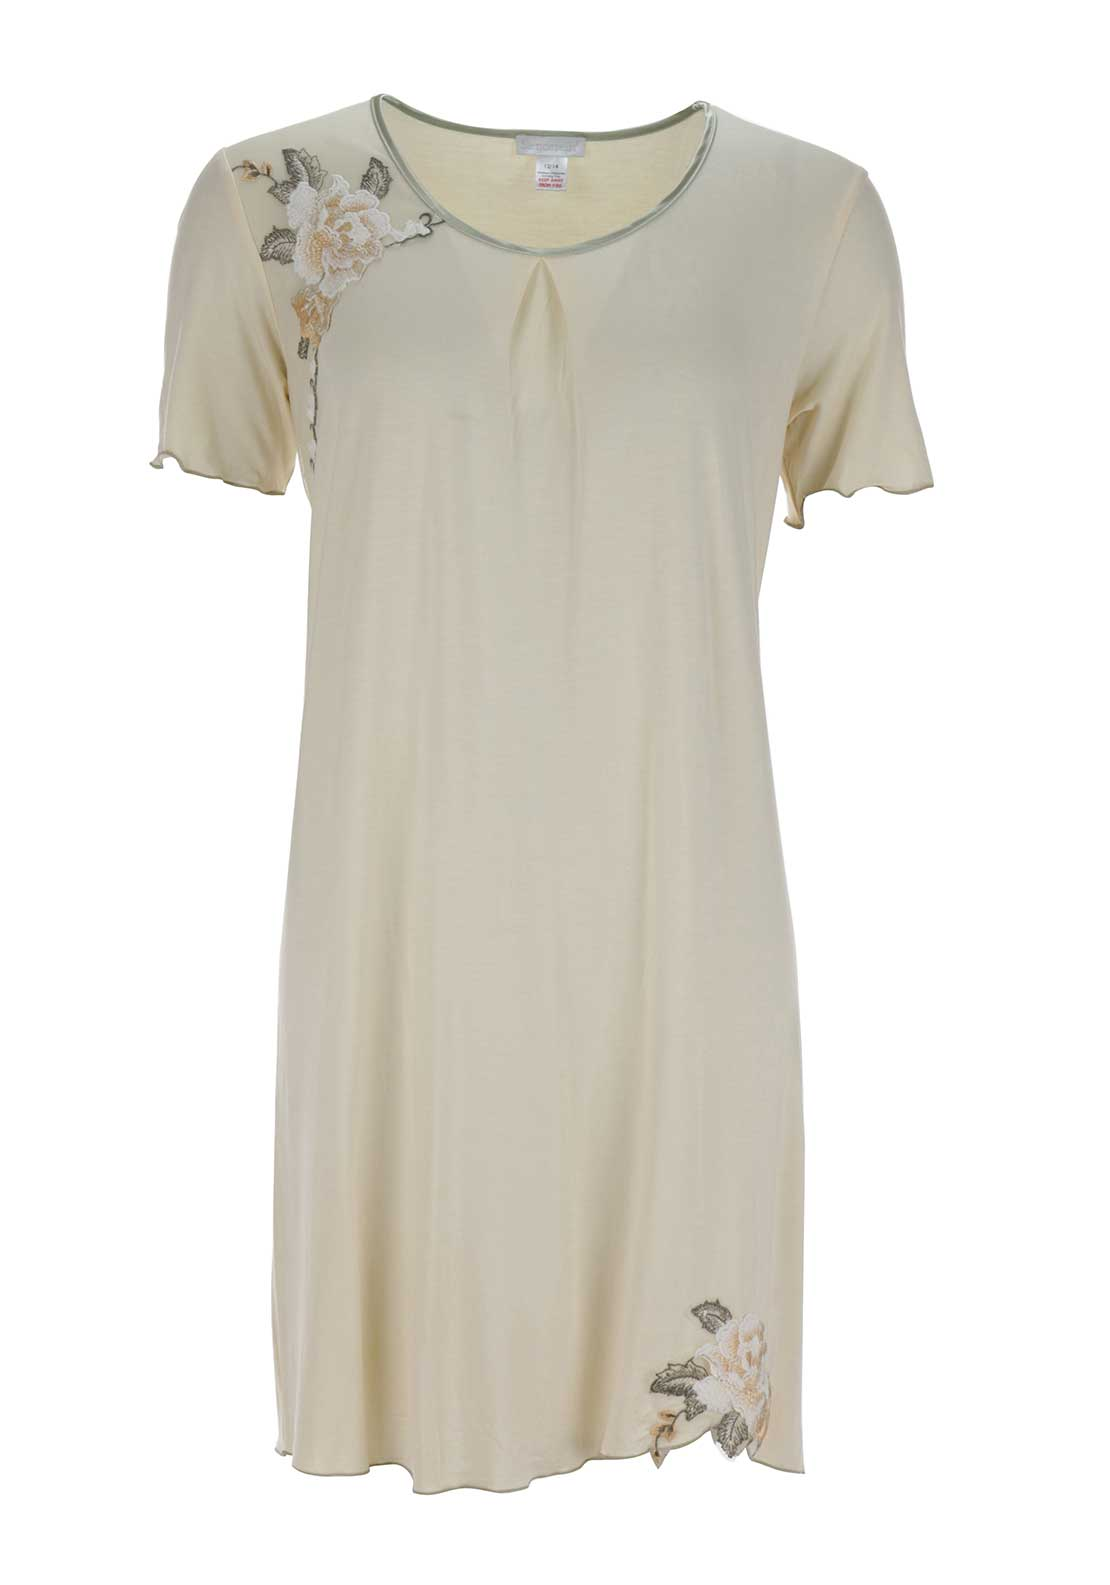 Slenderella Embroidered Trim Short Sleeve Nightdress, Peach